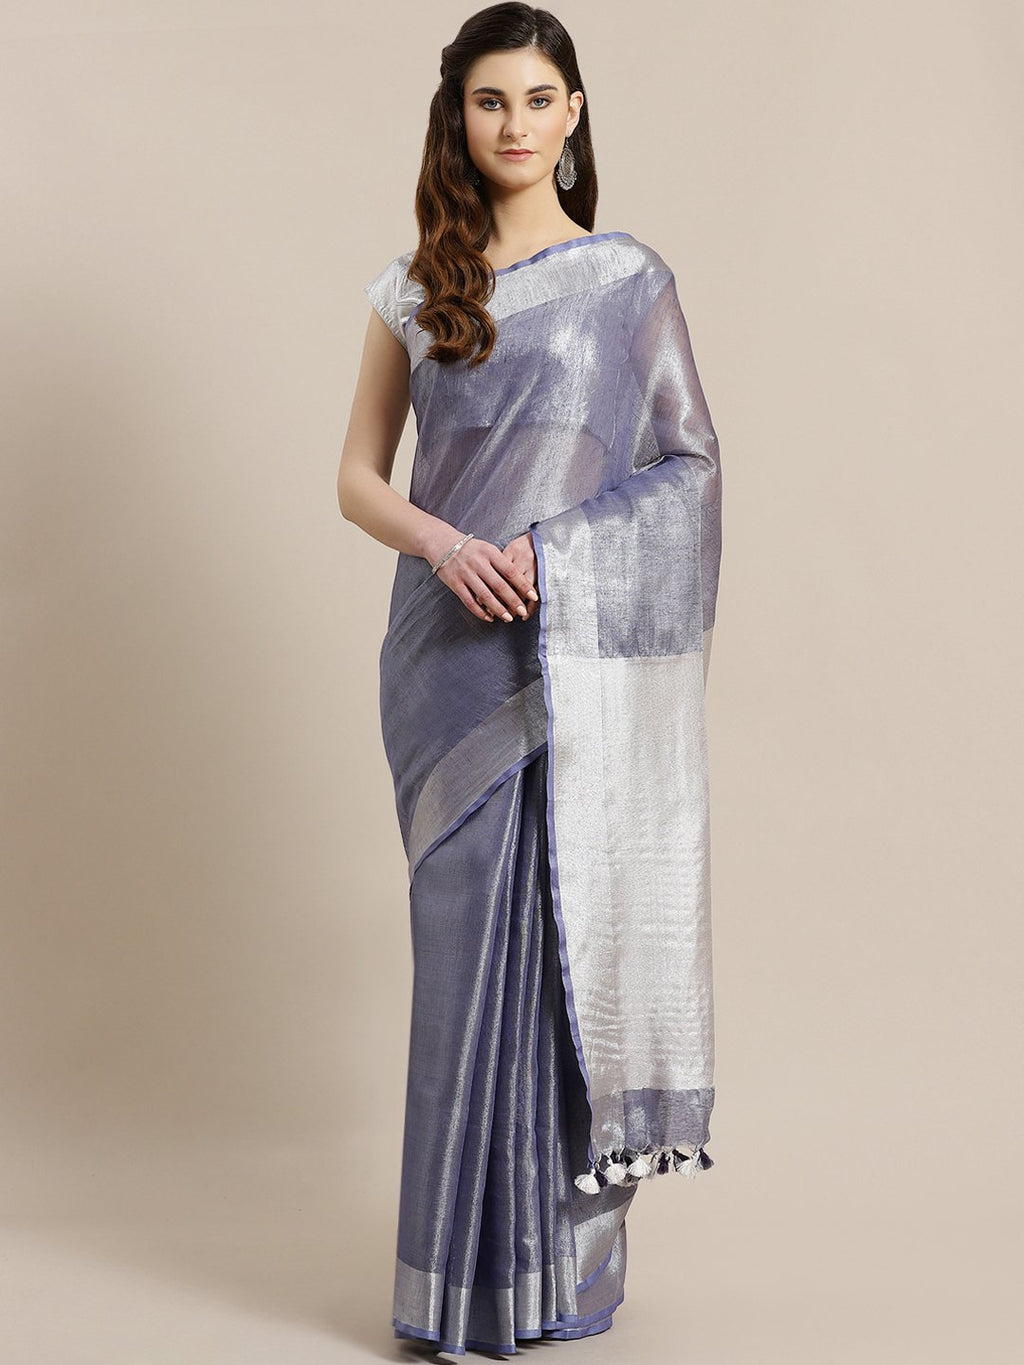 Blue Silver Dual-Tone Handwoven Handcrafted Solid Saree-Saree-Kalakari India-ALBGSA0009-Hand Woven, Sarees, Sustainable Fabrics, Tissue, Traditional Weave-[Linen,Ethnic,wear,Fashionista,Handloom,Handicraft,Indigo,blockprint,block,print,Cotton,Chanderi,Blue, latest,classy,party,bollywood,trendy,summer,style,traditional,formal,elegant,unique,style,hand,block,print, dabu,booti,gift,present,glamorous,affordable,collectible,Sari,Saree,printed, holi, Diwali, birthday, anniversary, sustainable, organic